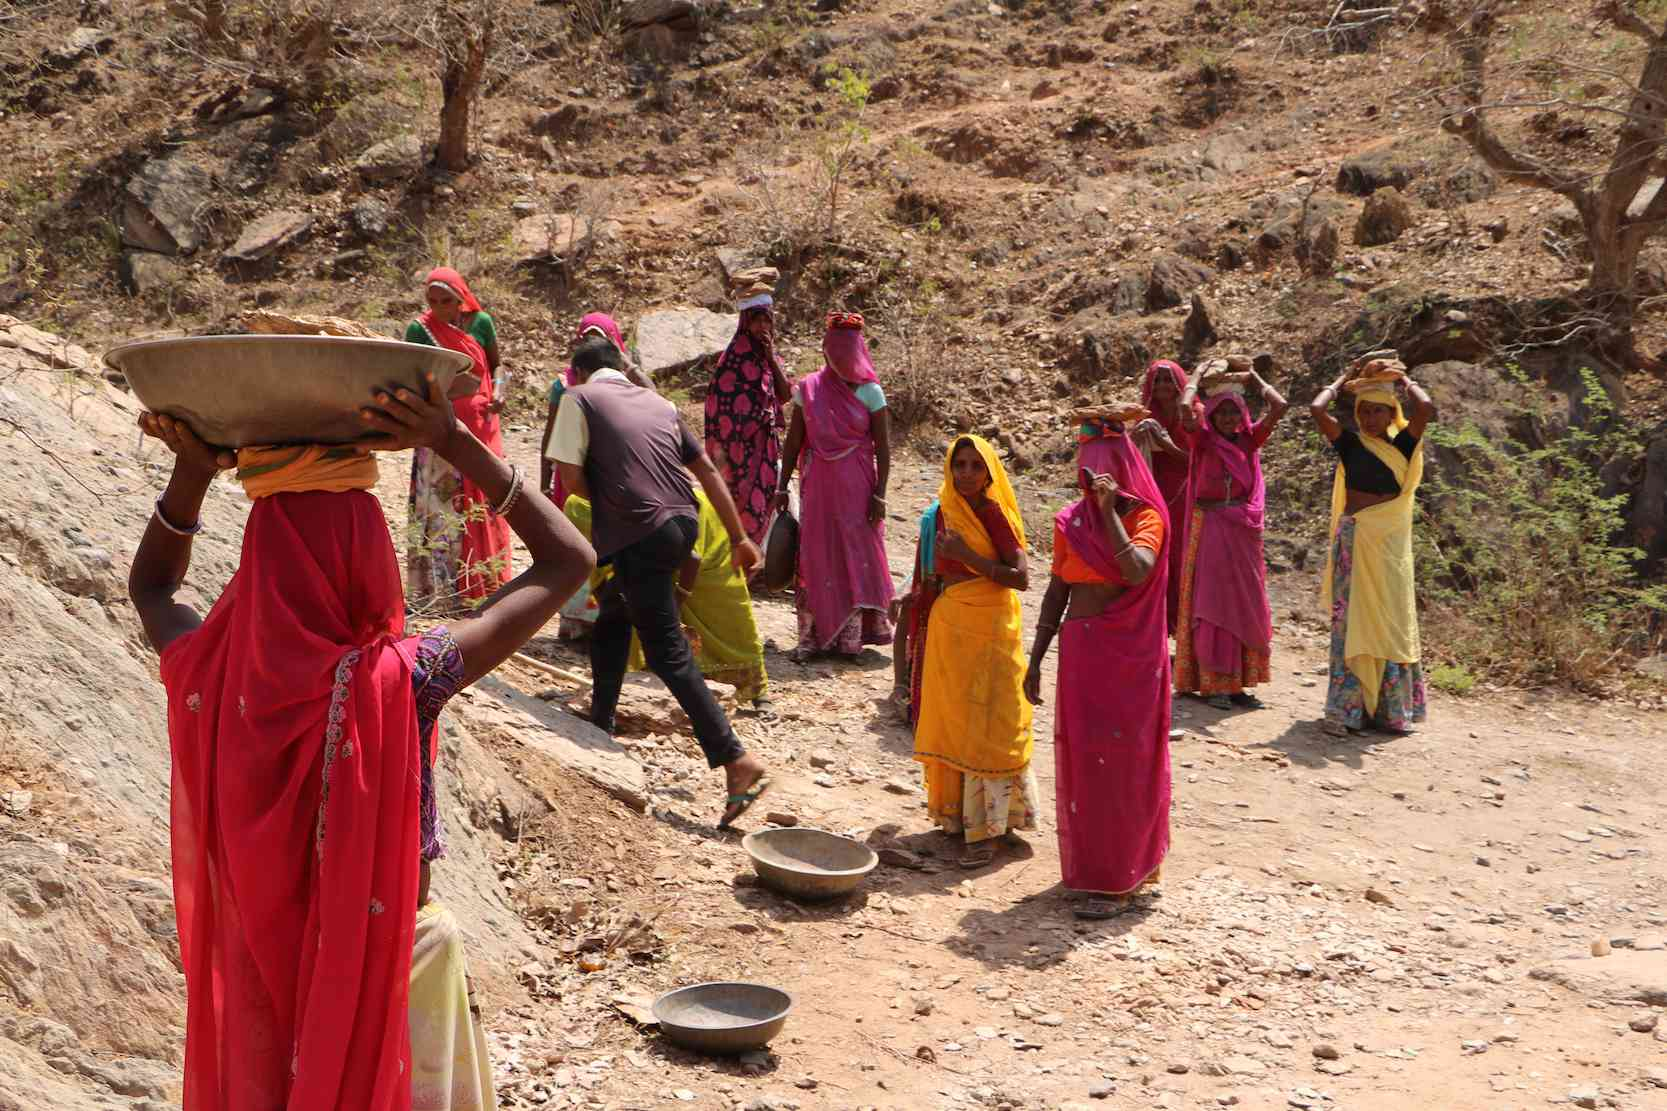 Rahul Meena was the sole man among a group of women workers at the NREGA worksite.